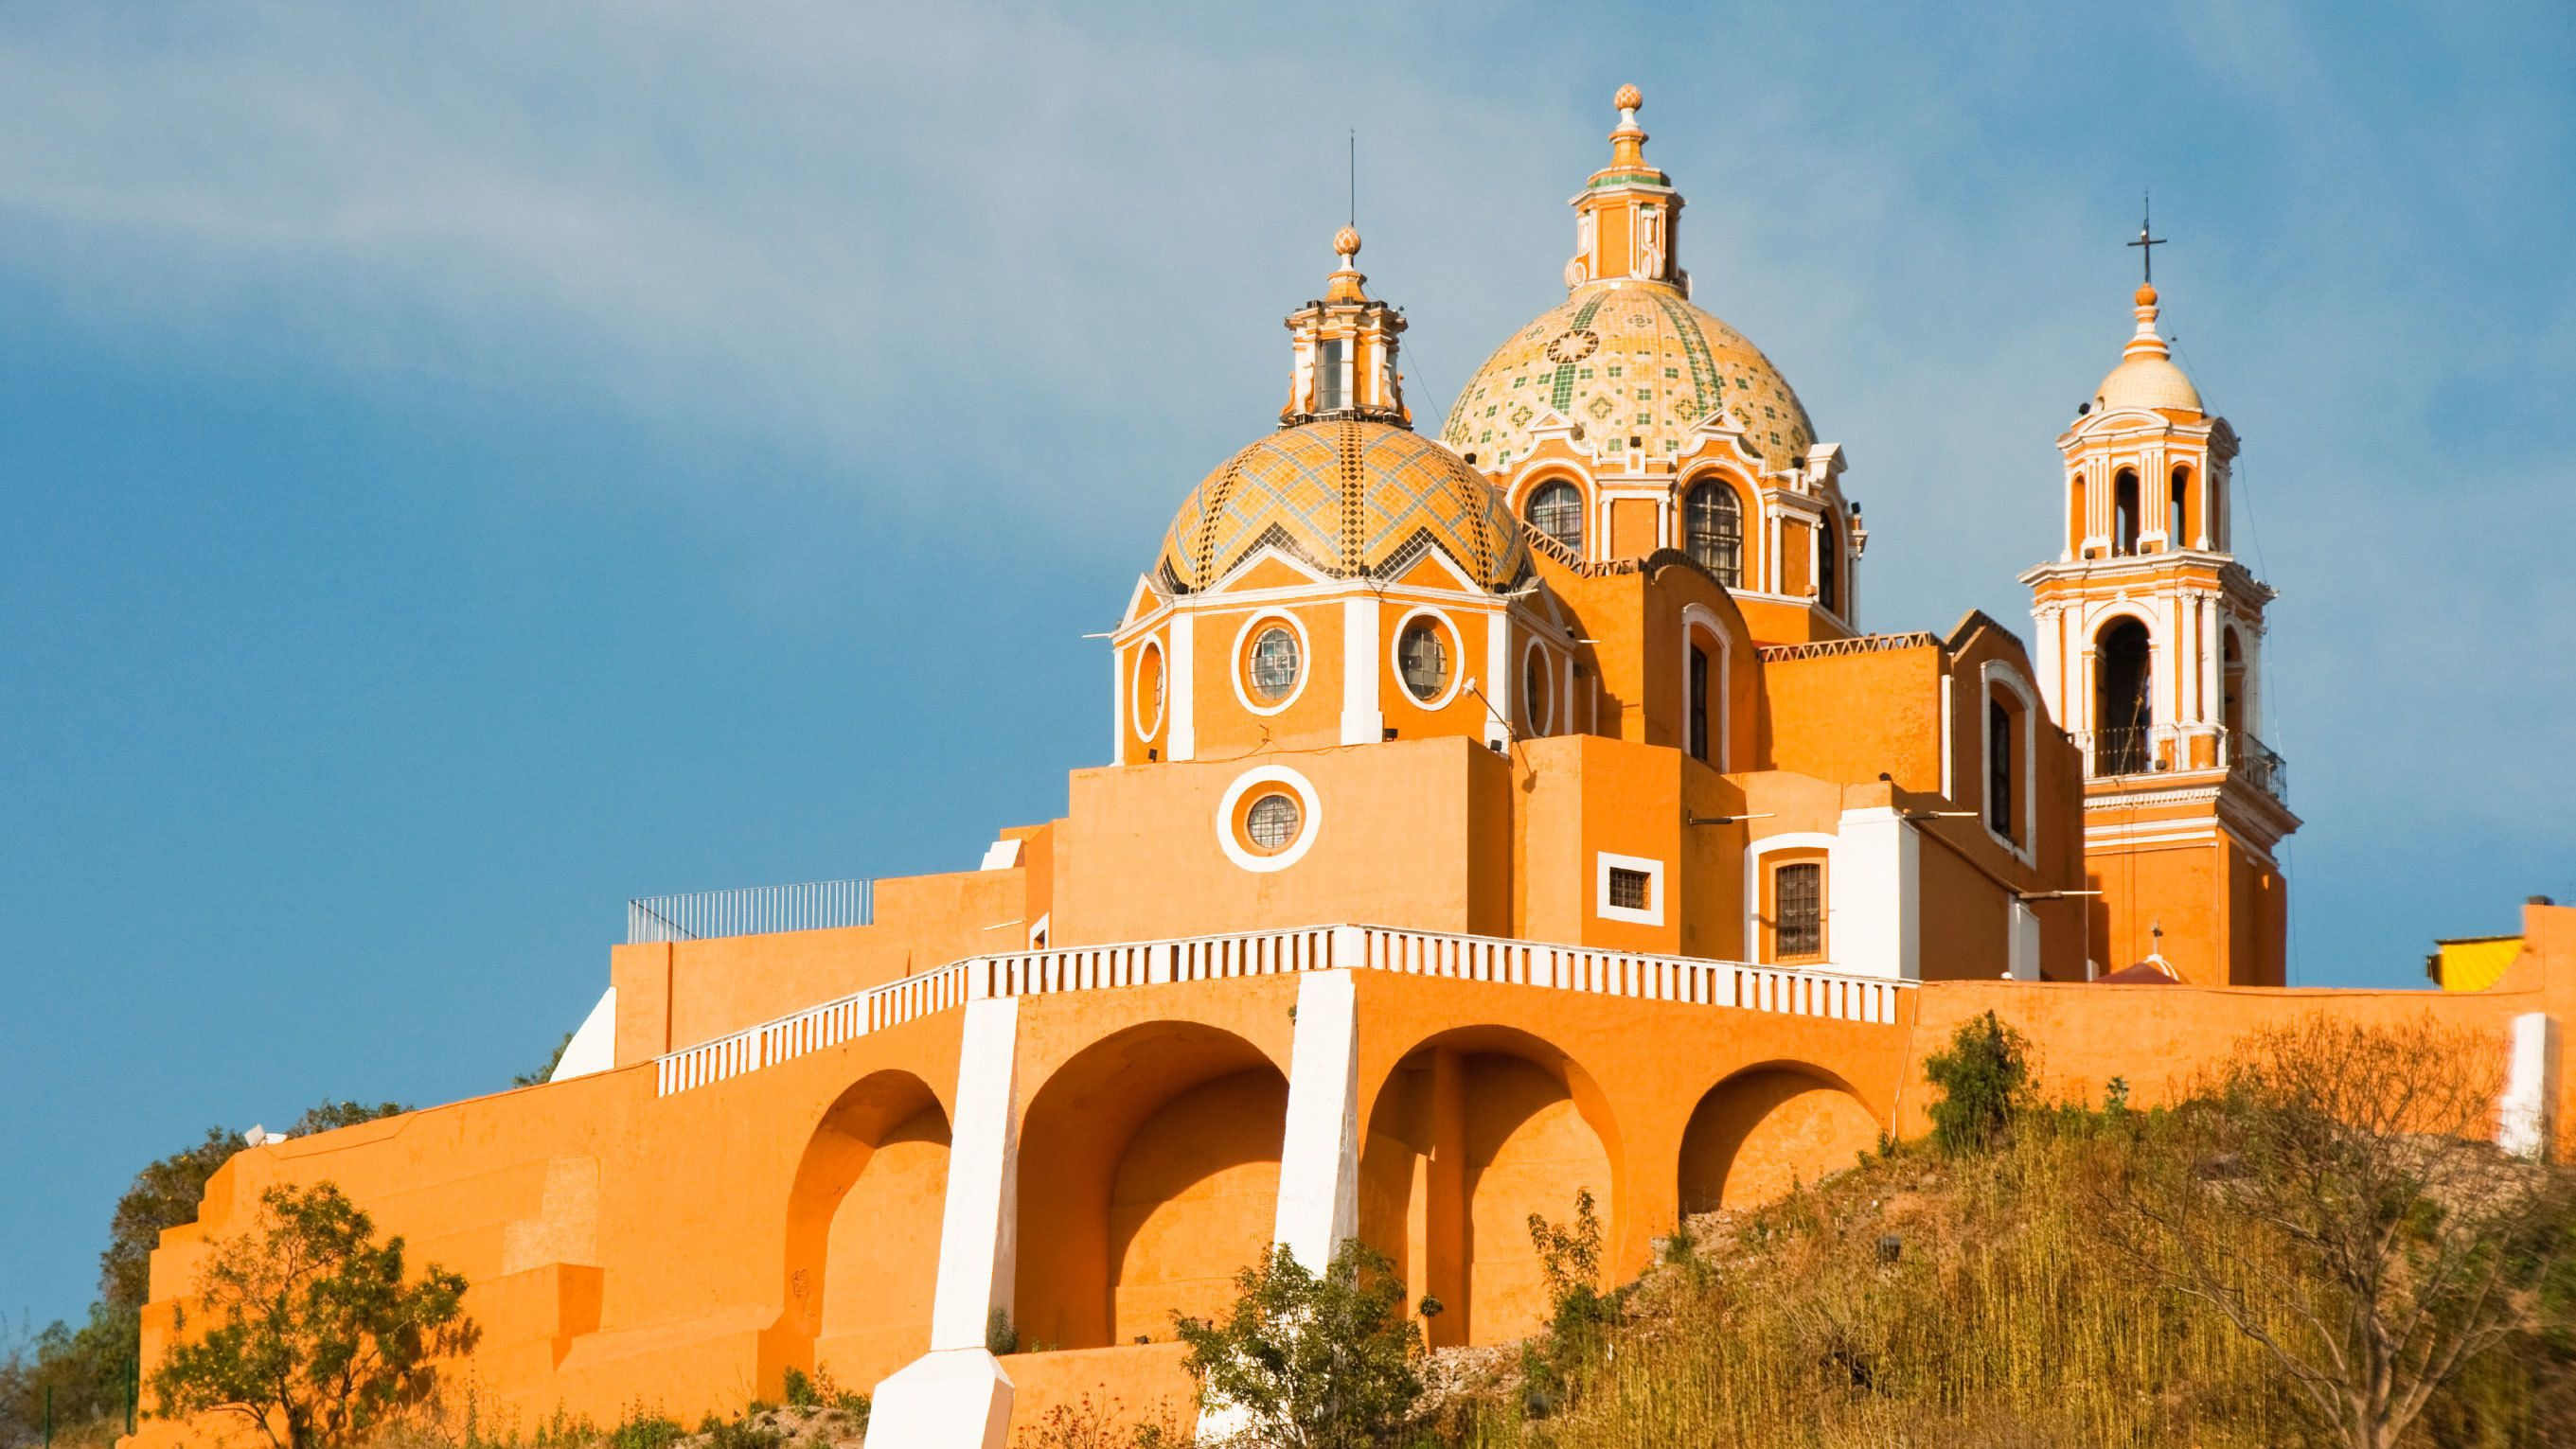 Day view of Cholula, Puebla in Mexico